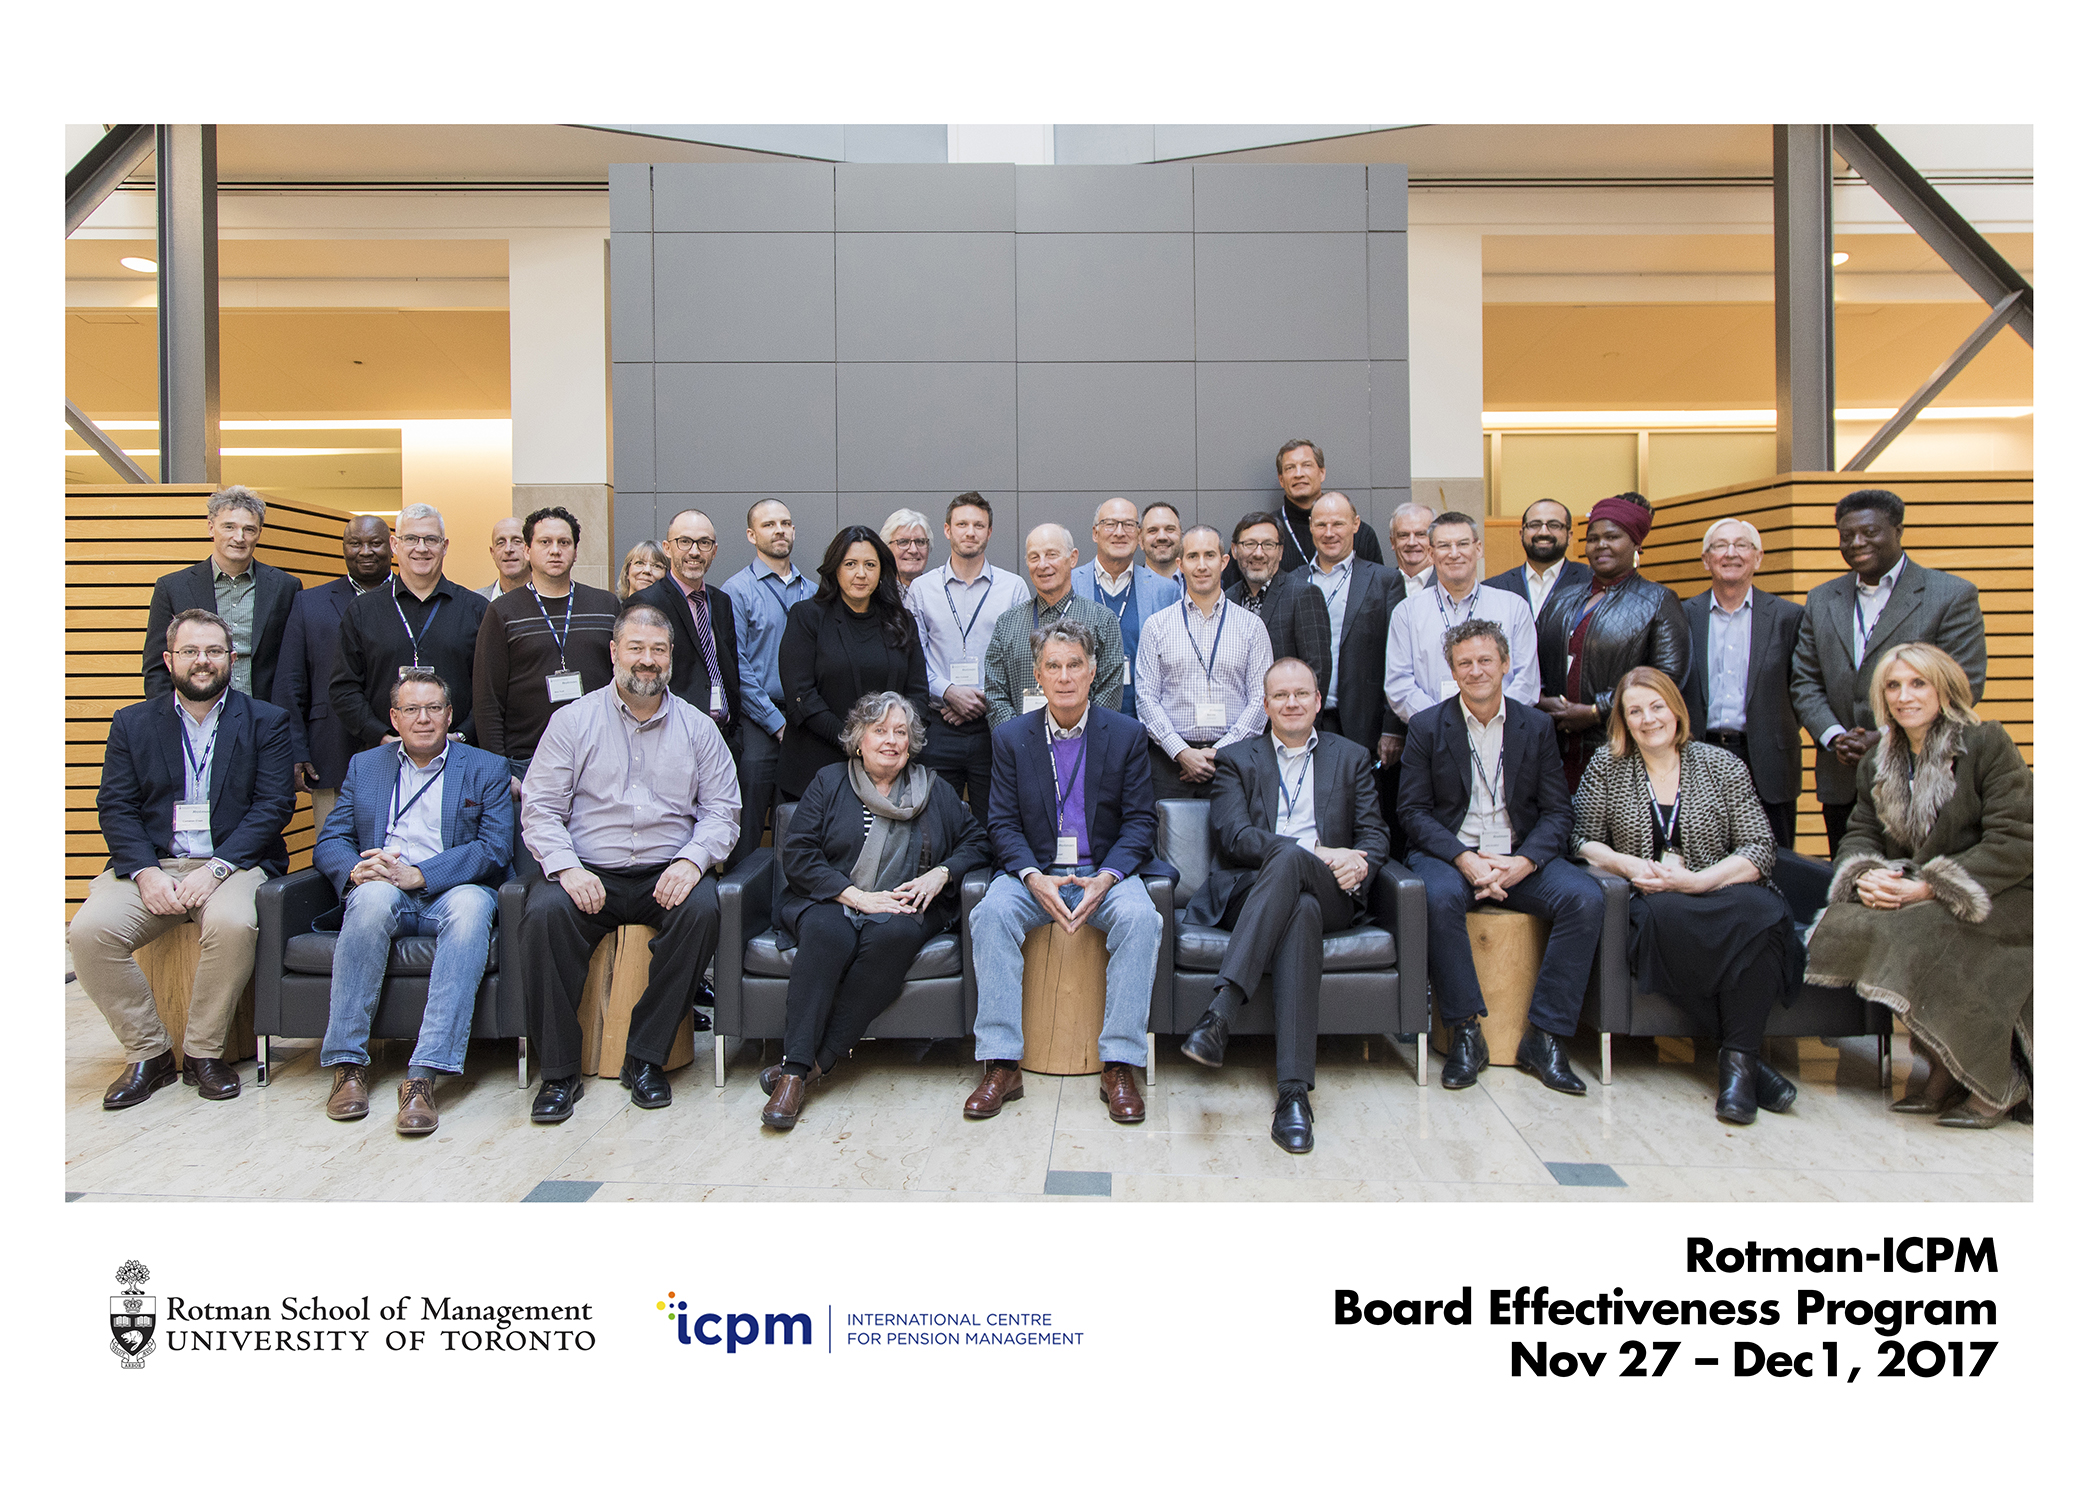 Rotman ICPM-November 2017 Board Effectiveness Program for Pension and Other Long-Horizon Investment Institutions.